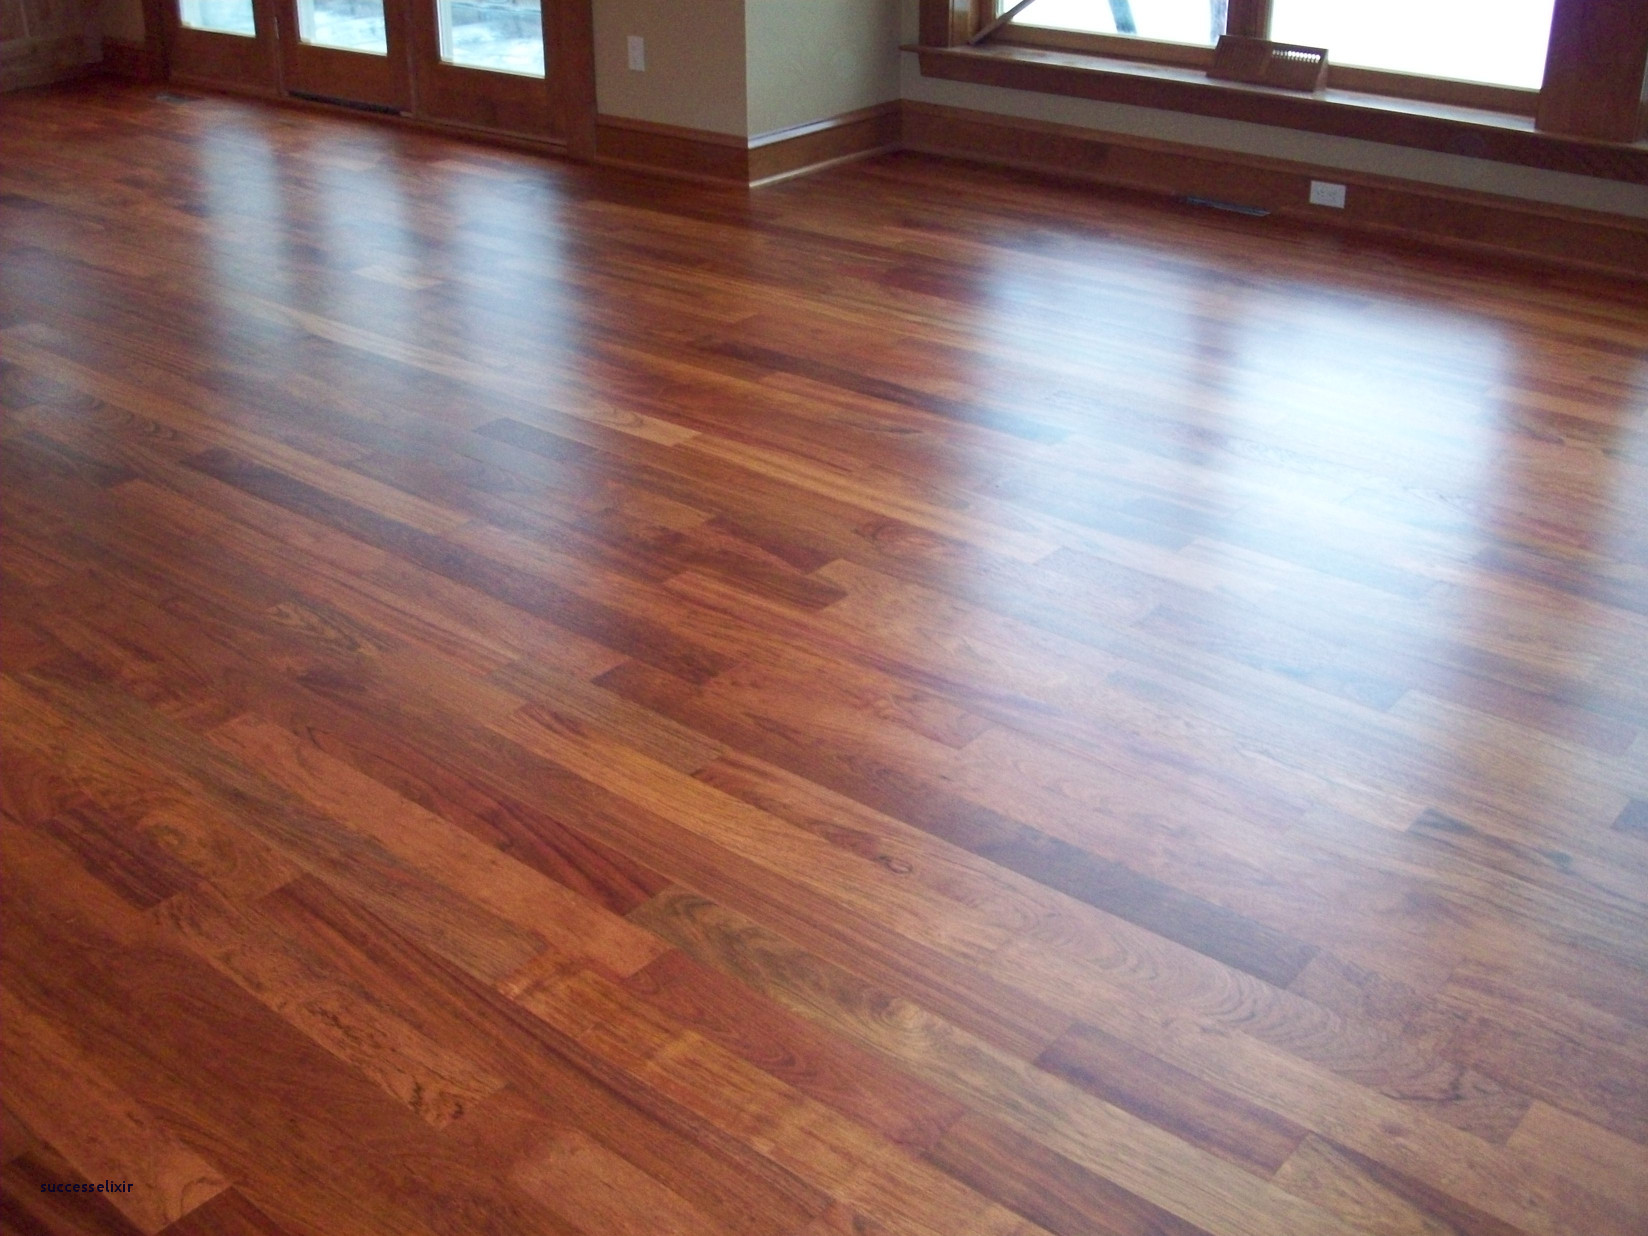 bamboo hardwood flooring for sale of bamboo laminate flooring sensational fascinating discount hardwood inside bamboo laminate flooring sensational fascinating discount hardwood flooring 12